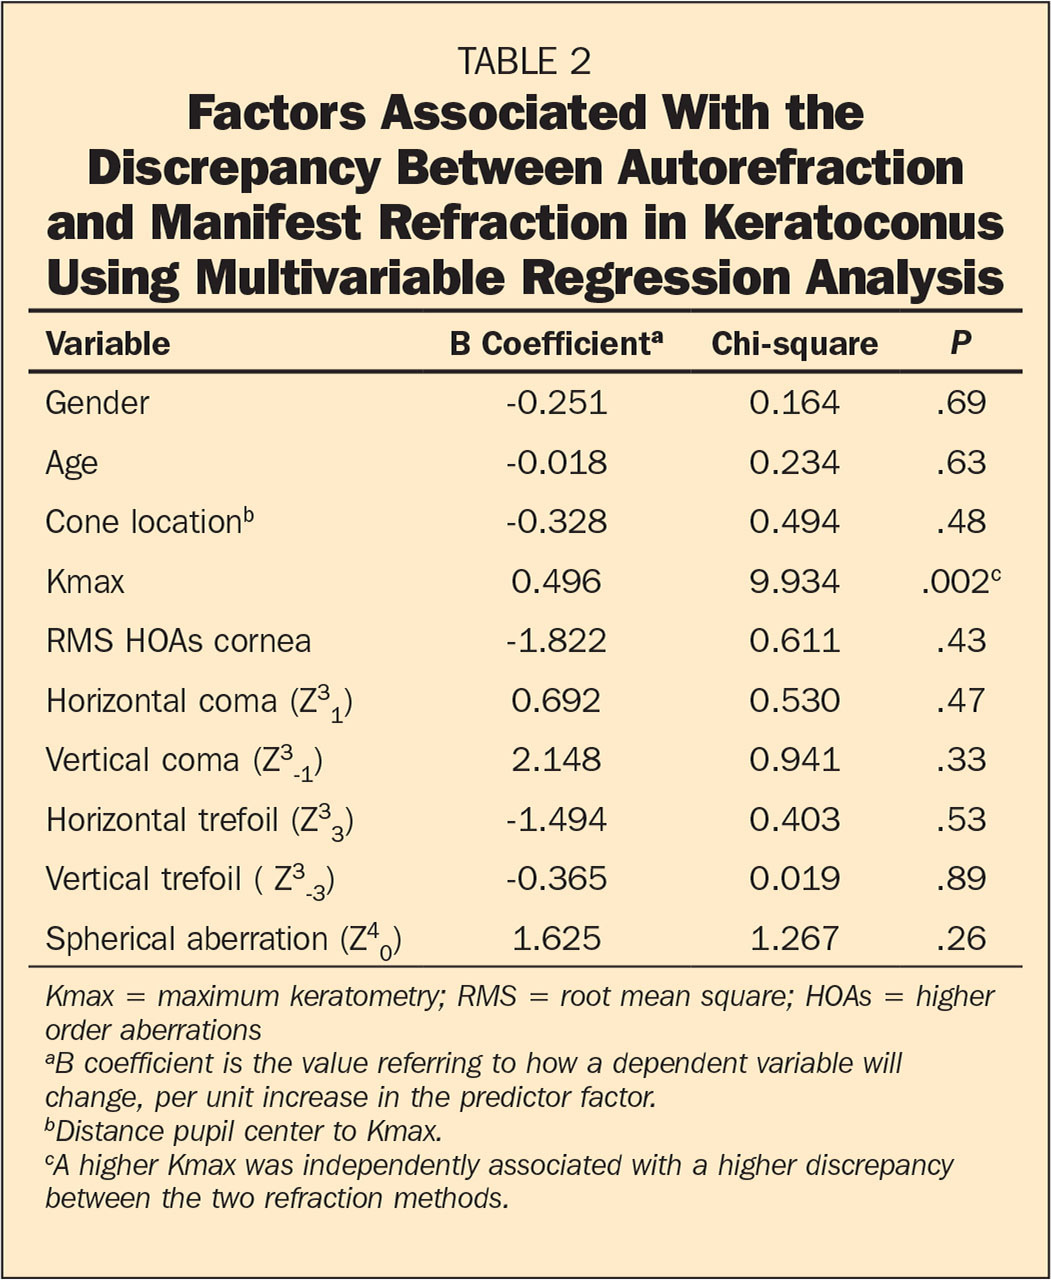 Factors Associated With the Discrepancy Between Autorefraction and Manifest Refraction in Keratoconus Using Multivariable Regression Analysis